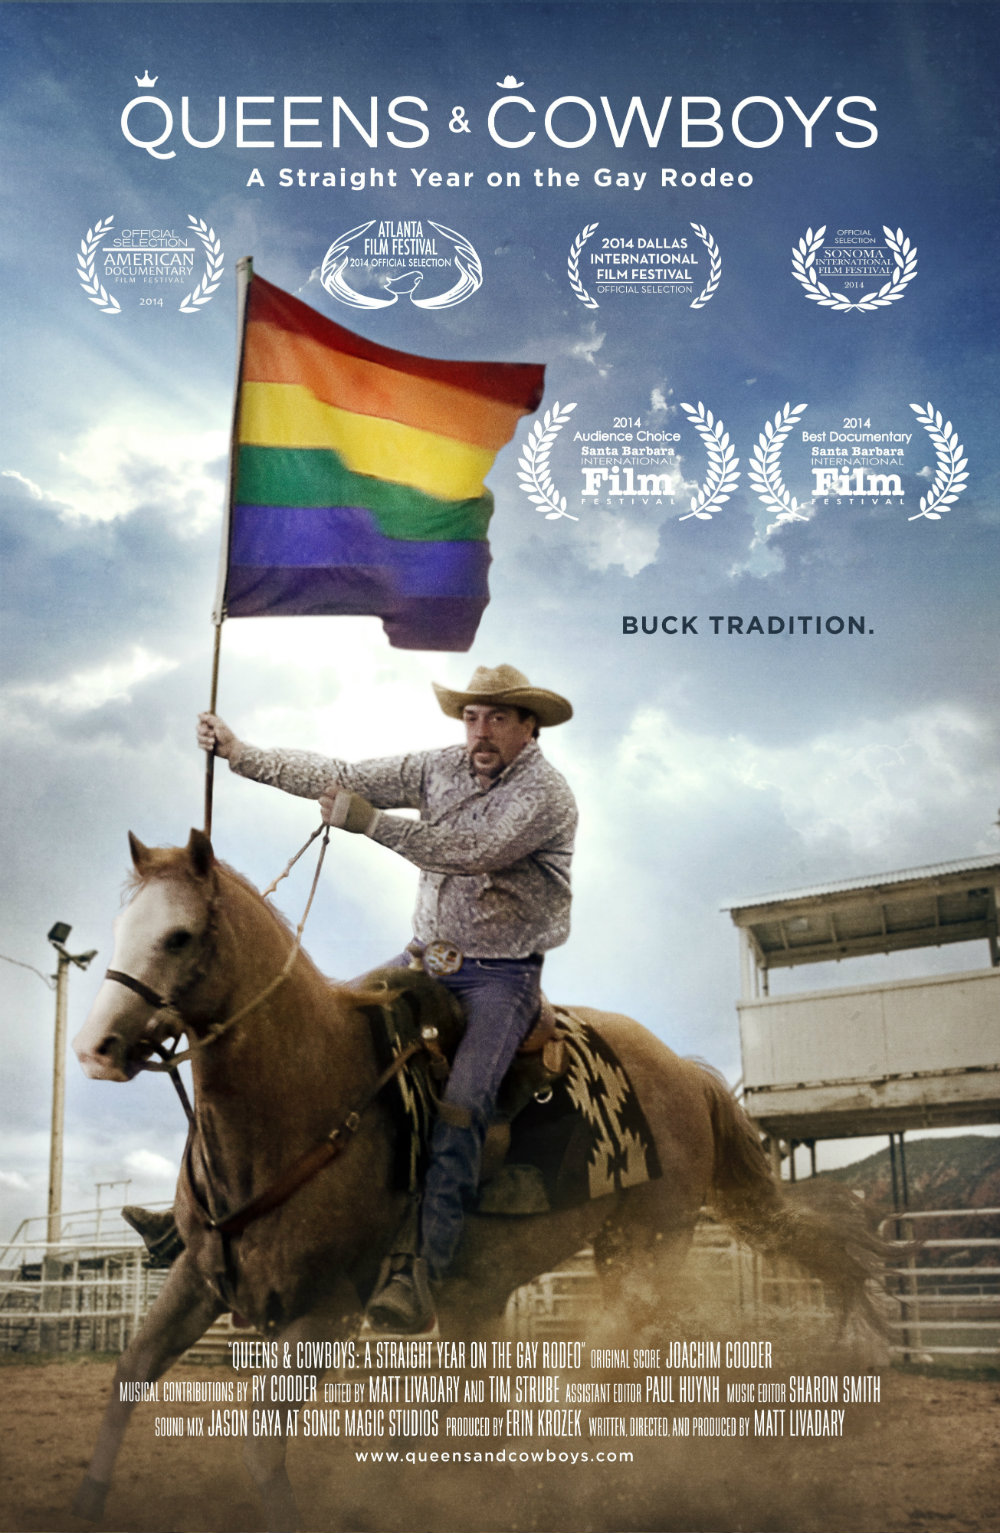 Photo: Gay rodeo film poster small